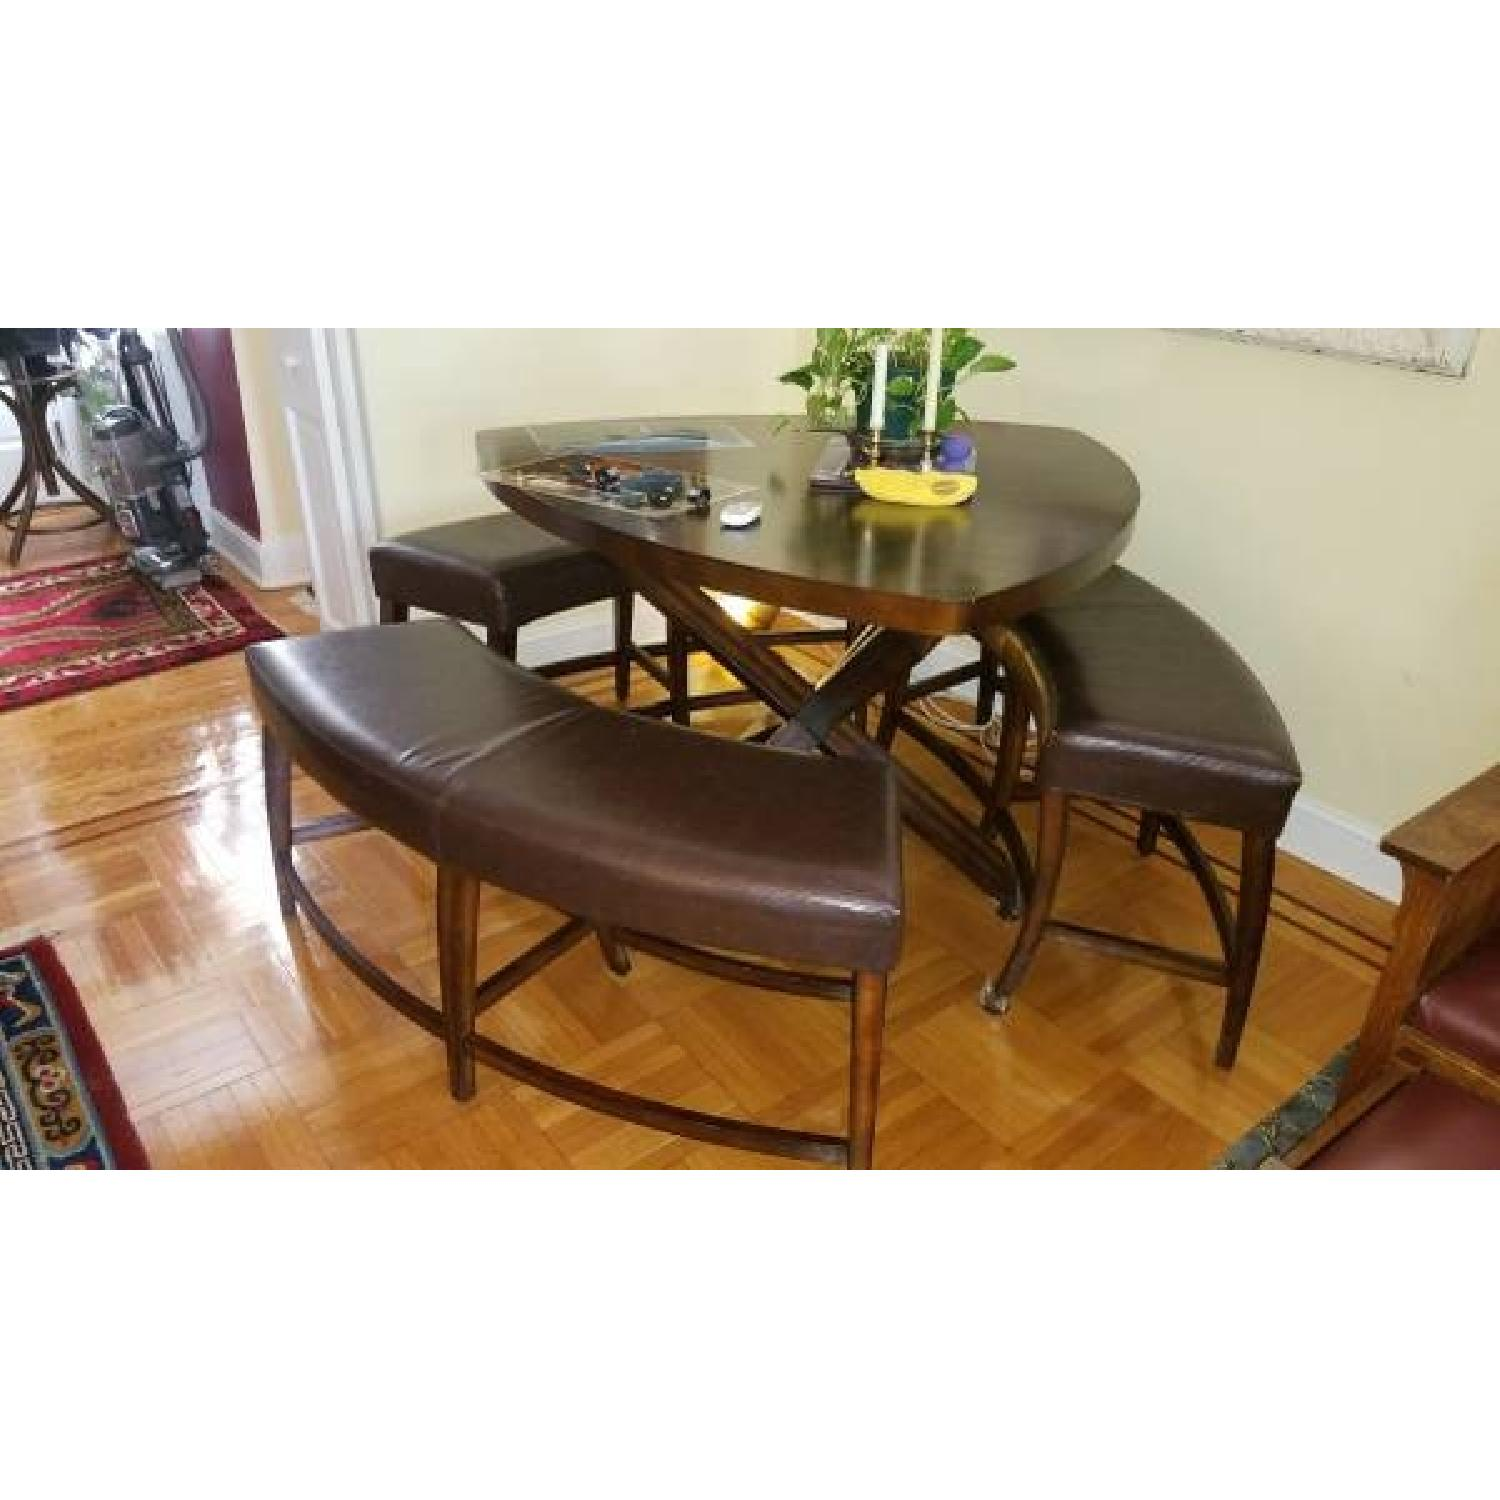 Triangle Dining Table w/ 3 Benches - image-1